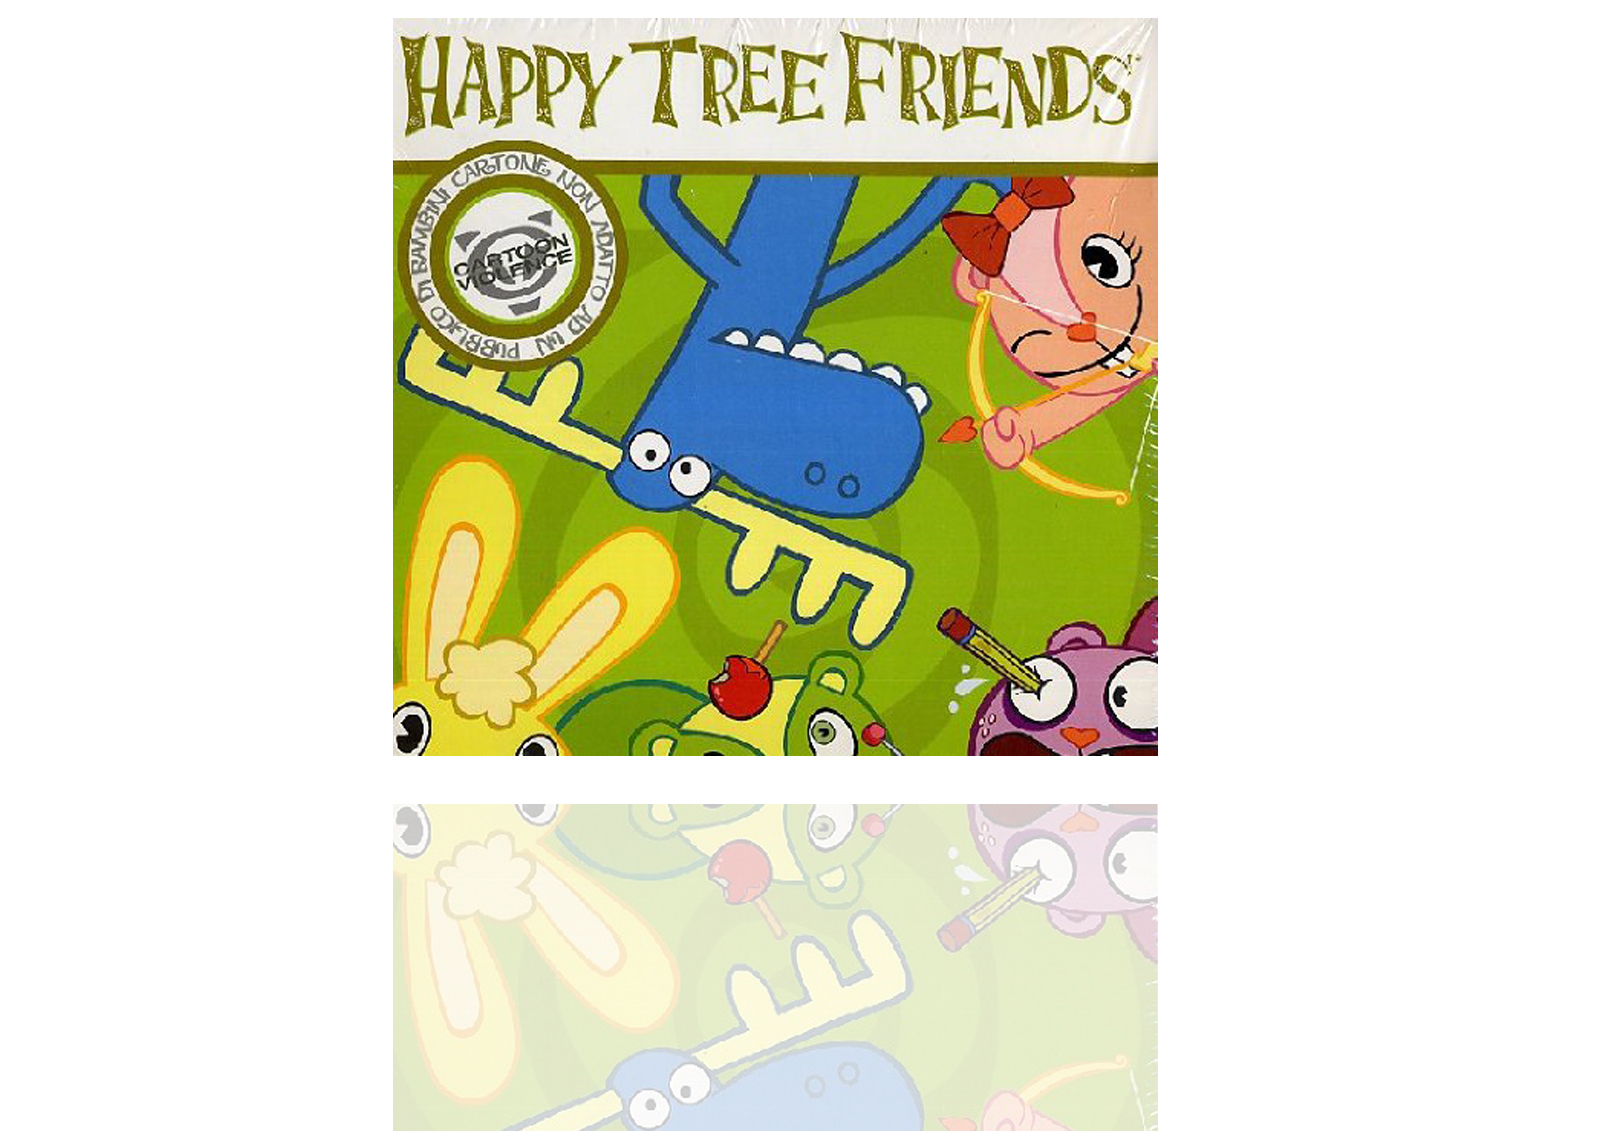 Pacco Sorpresa, Happy Tree friends, 4 DVD Di Cui 1 Natalizio, T-Shirt